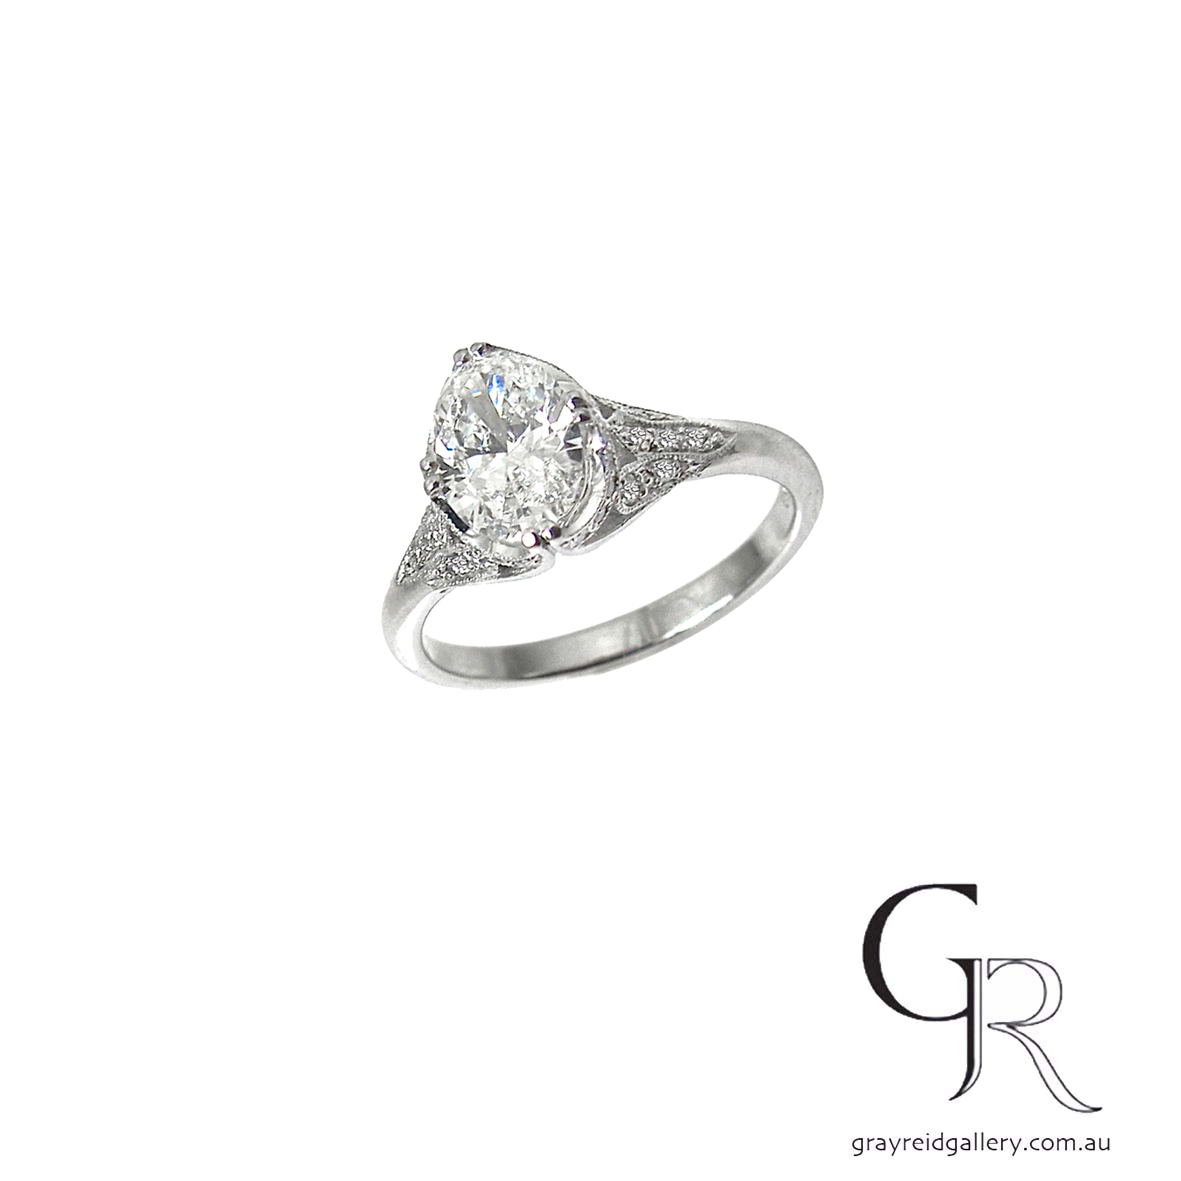 Custom made oval diamond Engagement Ring Melbourne Gray Reid Gallery.jpg